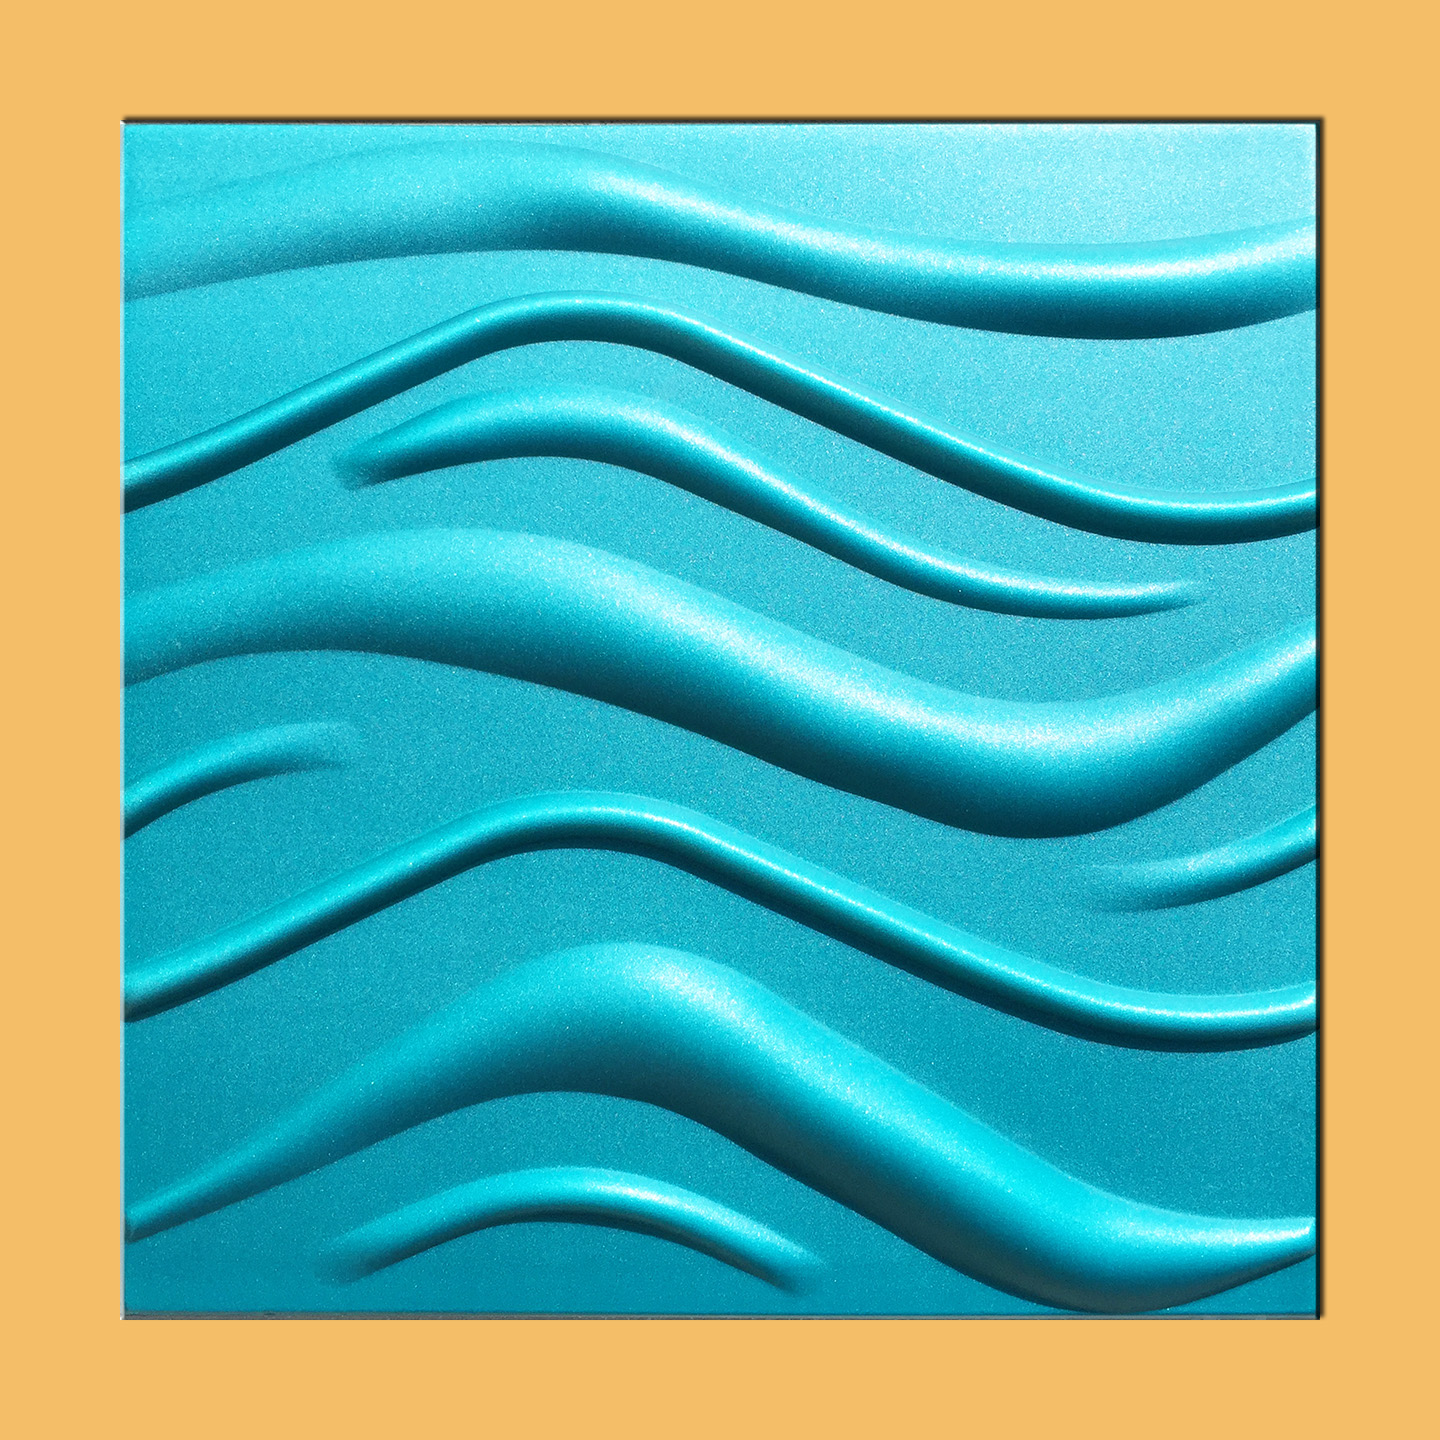 20x20 wave turquoise tile hd foam ceiling tiles antique 20x20 wave turquoise tile hd foam ceiling tiles hd foam dailygadgetfo Image collections